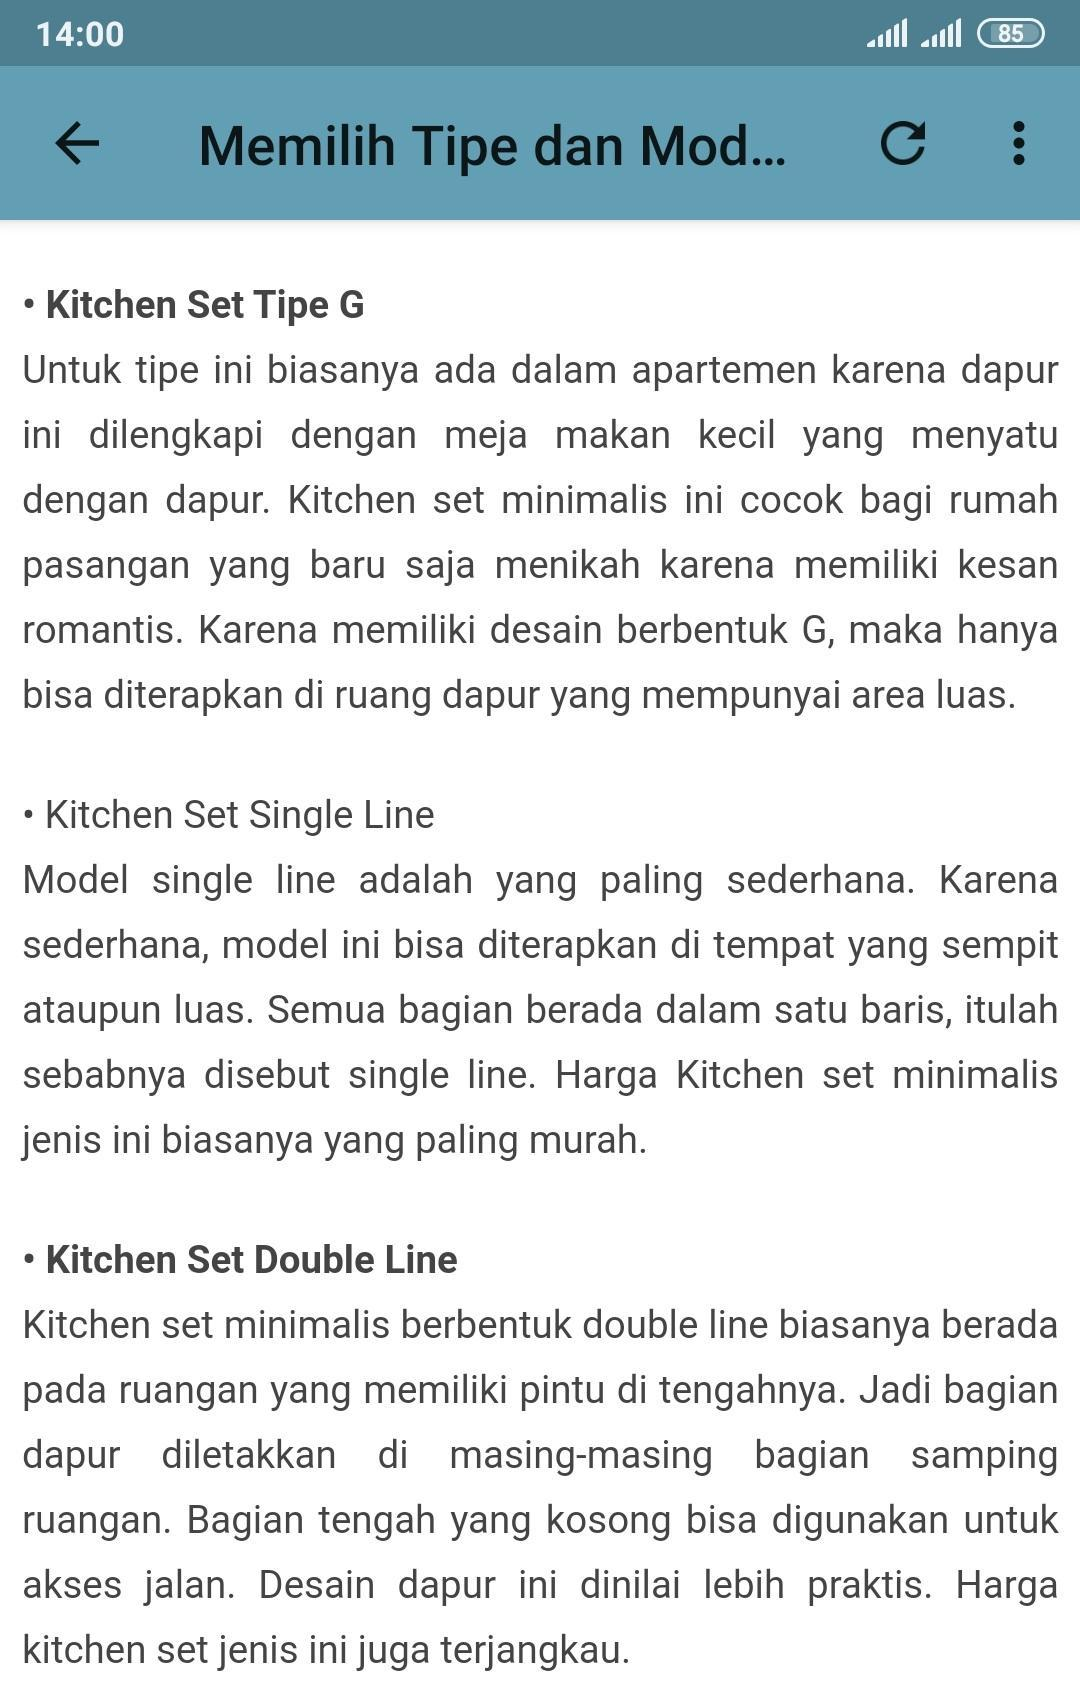 Daftar Harga Kitchen Set Minimalis For Android Apk Download